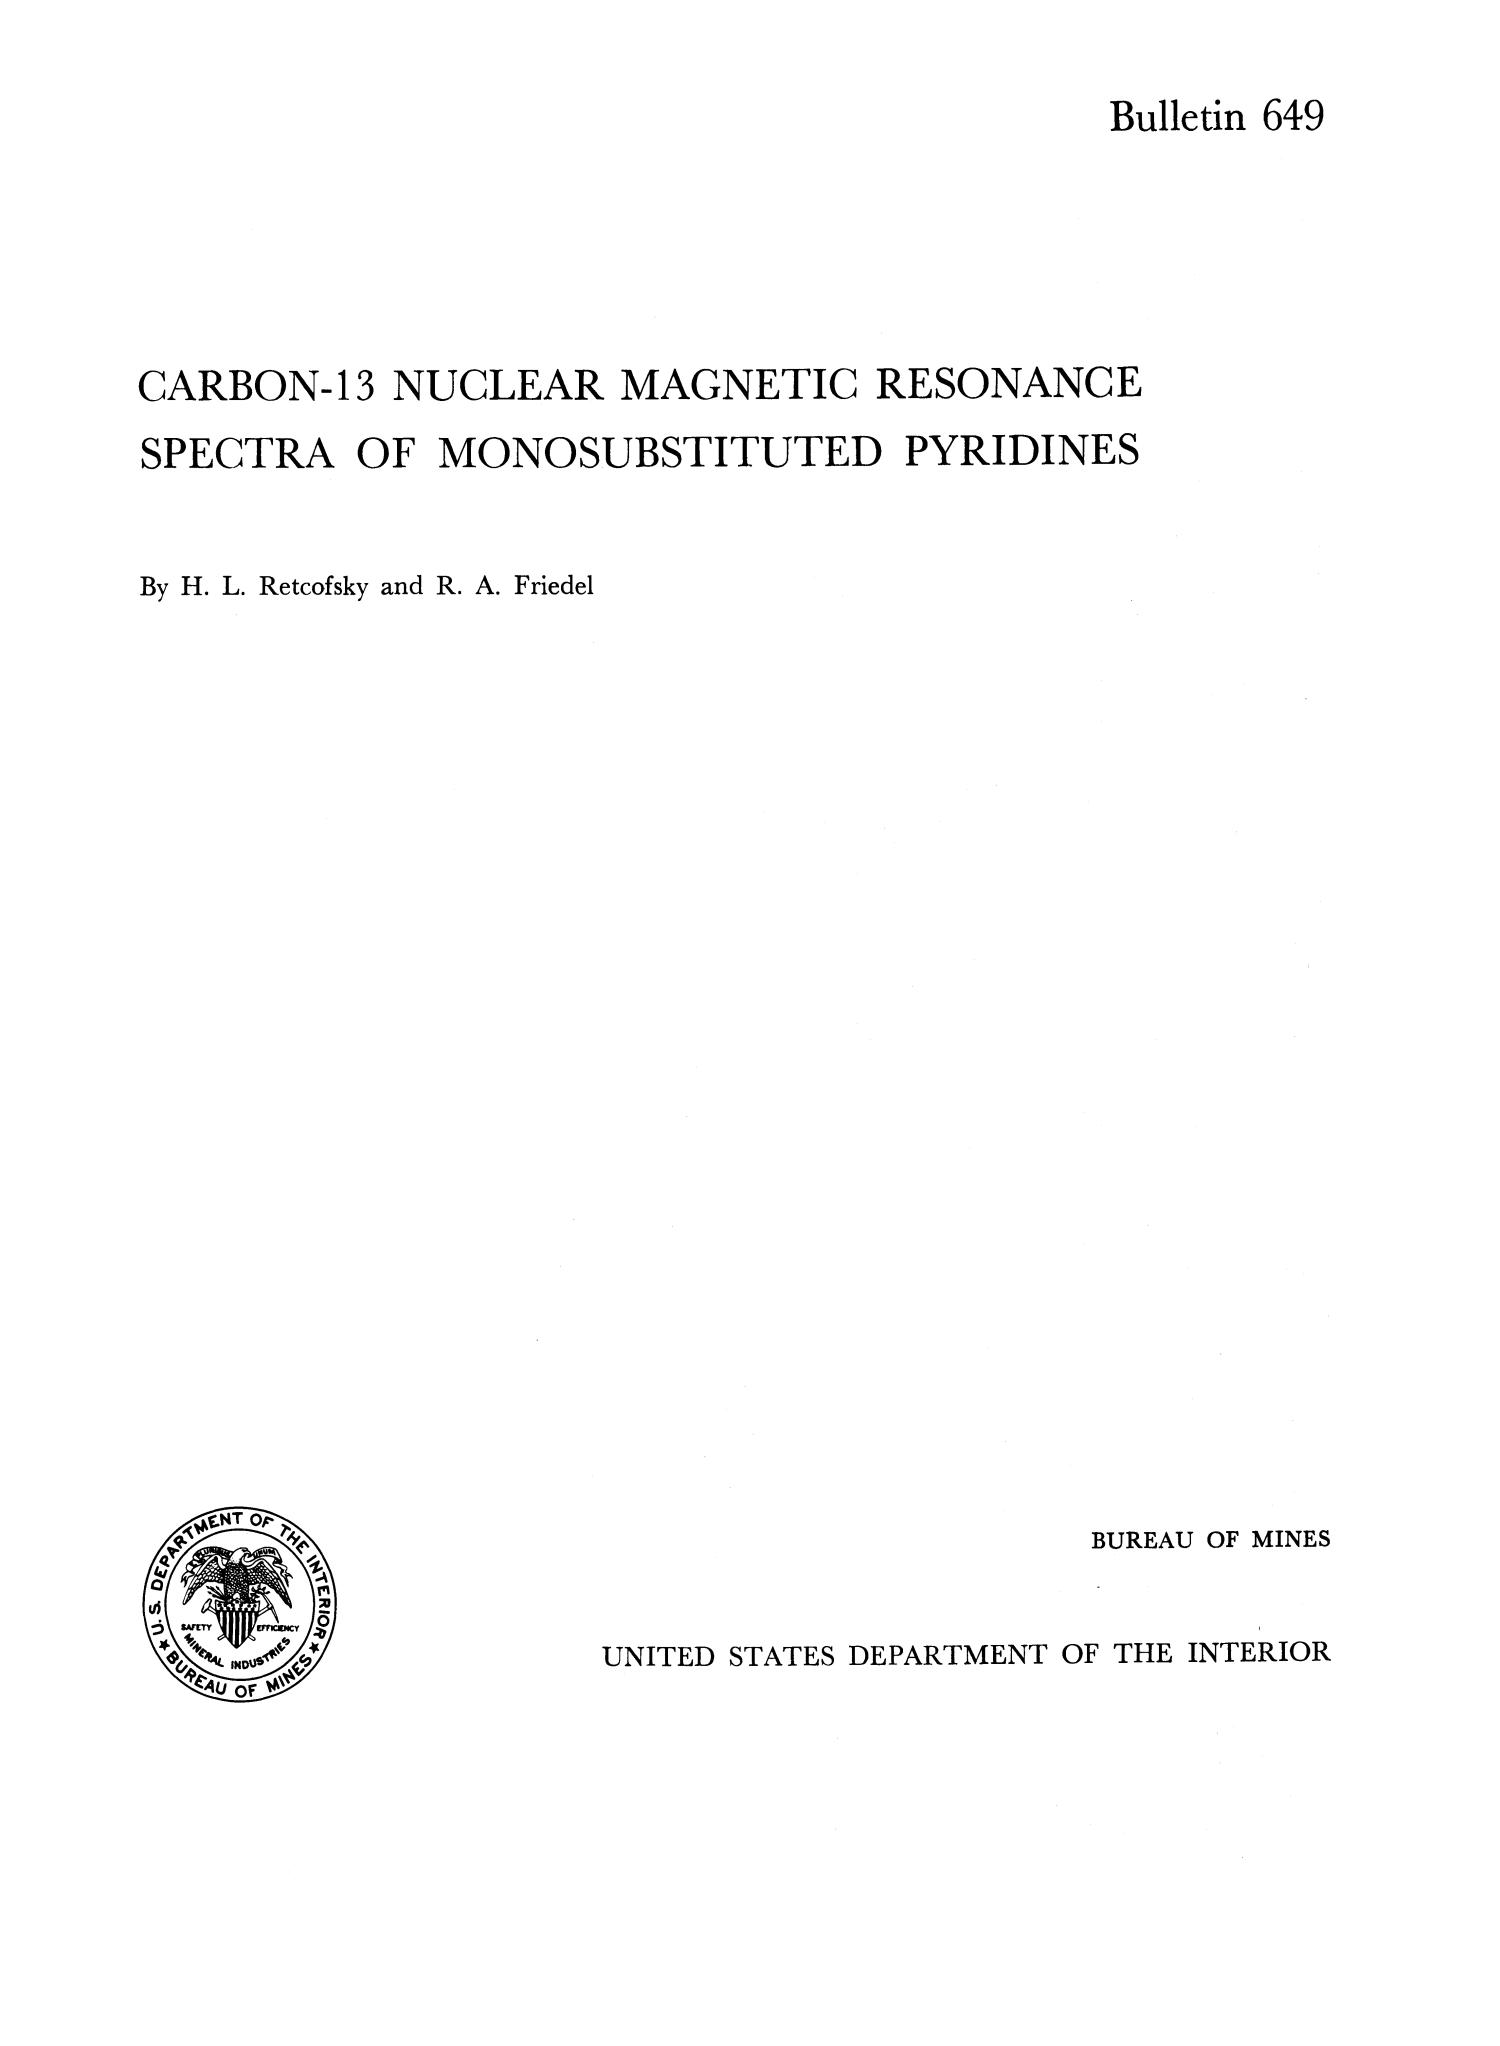 Carbon-13 Nuclear Magnetic Resonance Spectra of Monosubstituted Pyridines                                                                                                      I